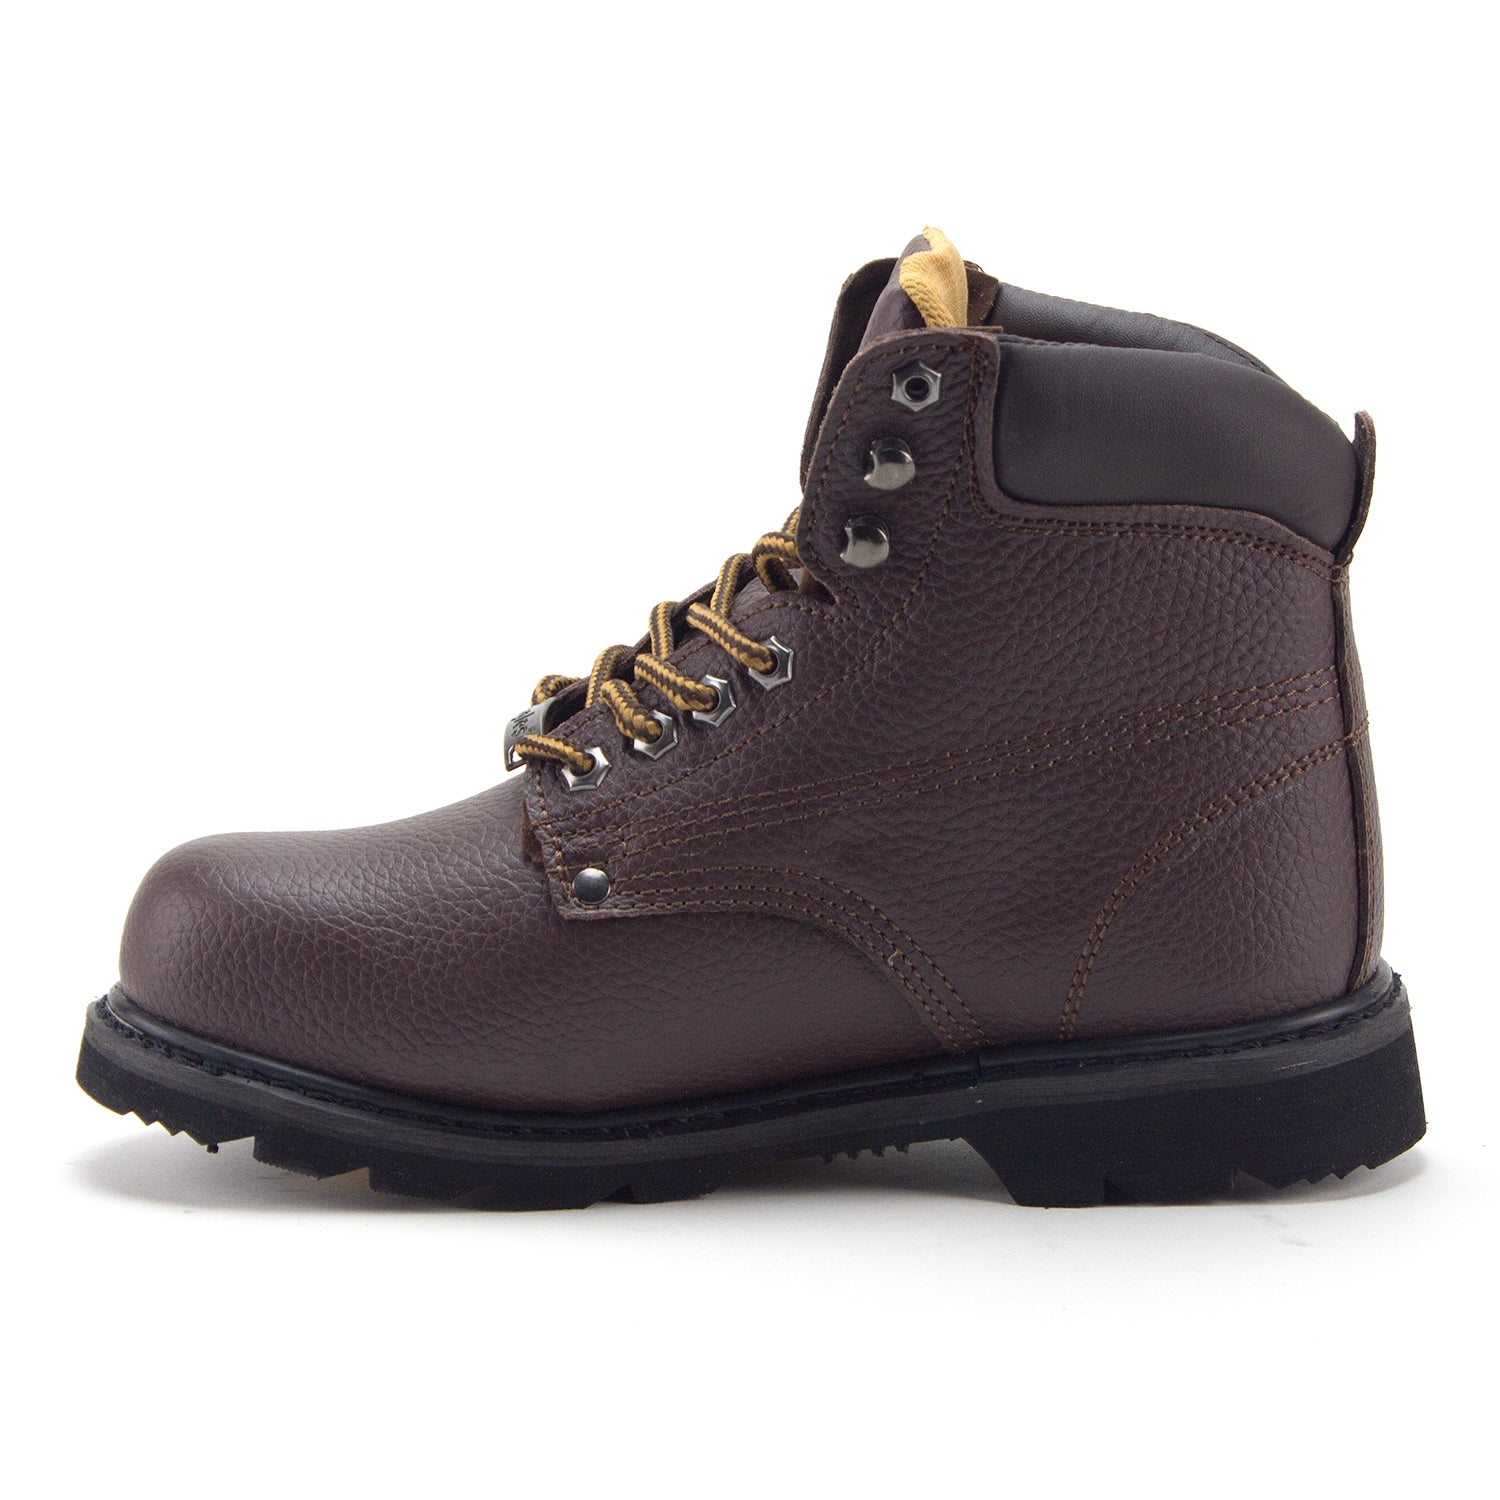 7eafeff7fab Men's 622S Genuine Leather Steel Toe Outdoor Construction Safety Work Boots